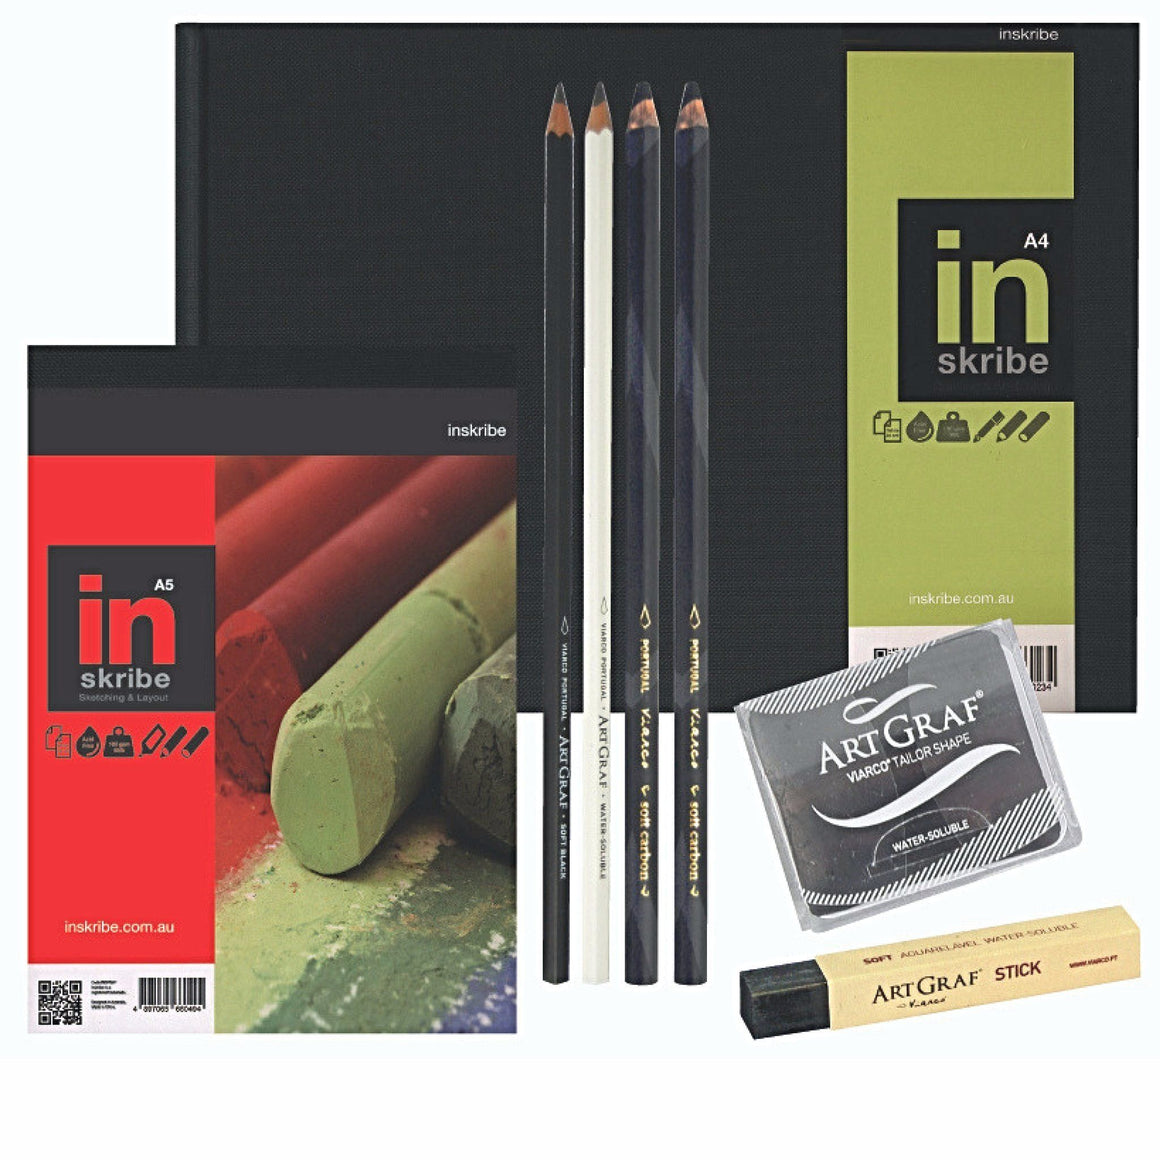 This set includes an A4 landscape and A5 hardbound sketch pad, 4 ArtGrat limited edition graphite pencils with a soft watercolour stick and a unique disc which can be used dry for drawing or with water soluble techniques that allow for an unusually expressive range of shades.